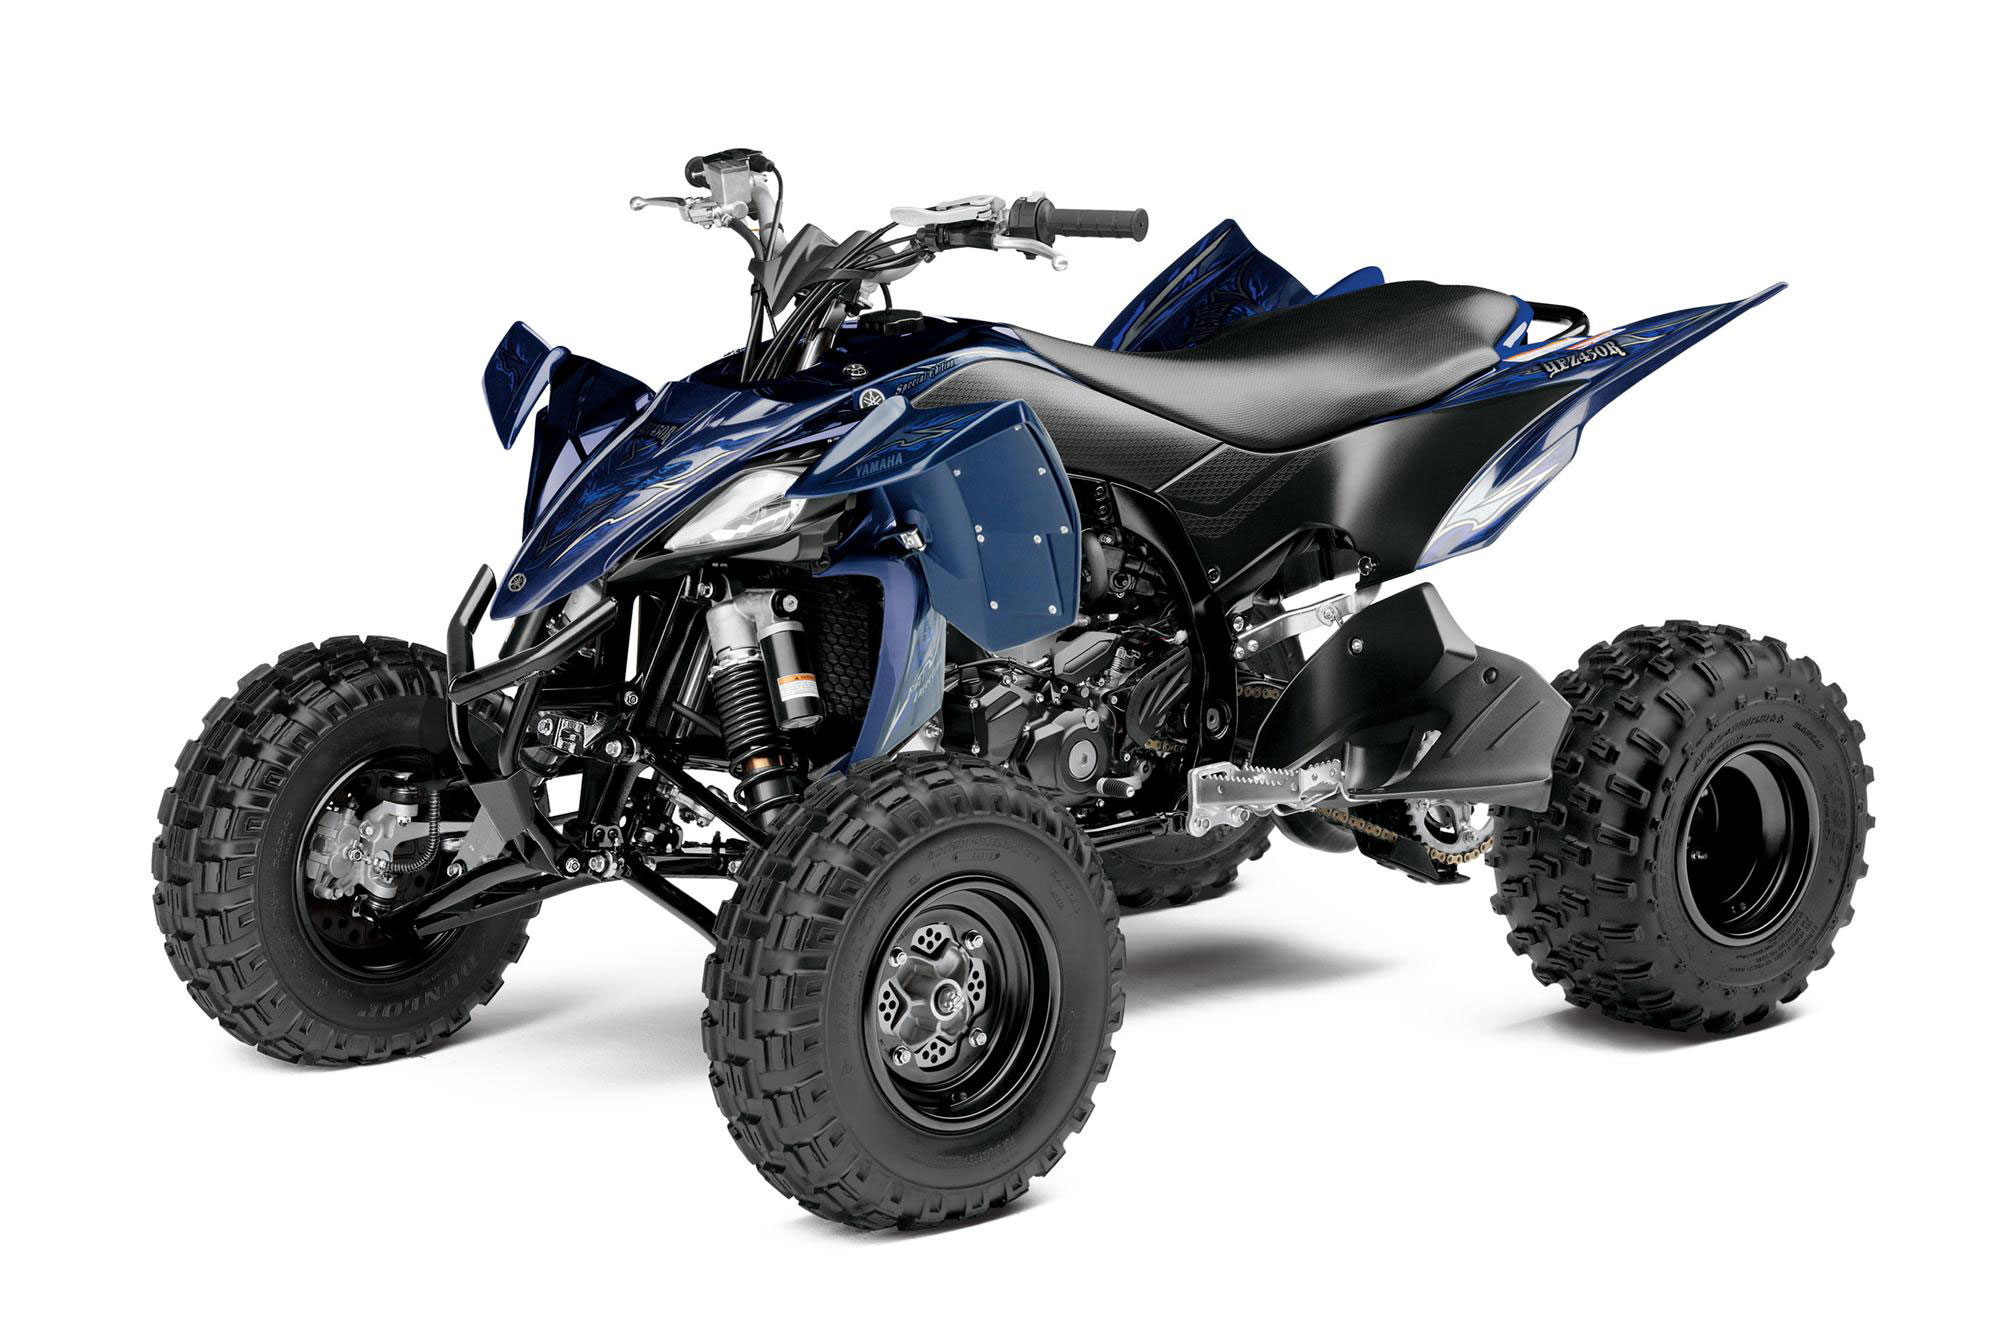 2013 yamaha raptor yfz450r se review. Black Bedroom Furniture Sets. Home Design Ideas